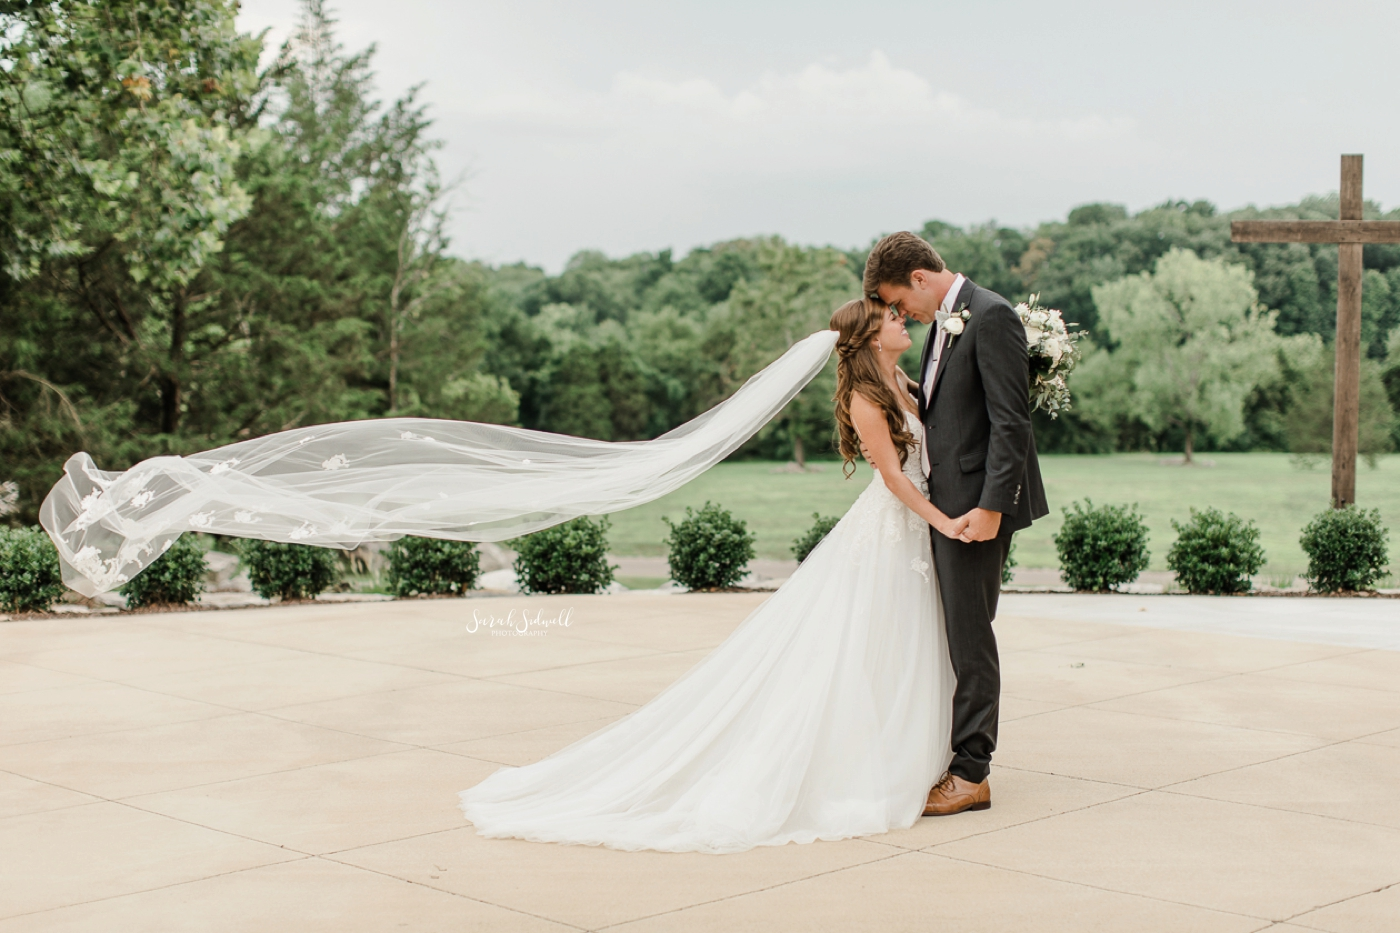 A bride's veil blows in the wind as she kisses her groom.